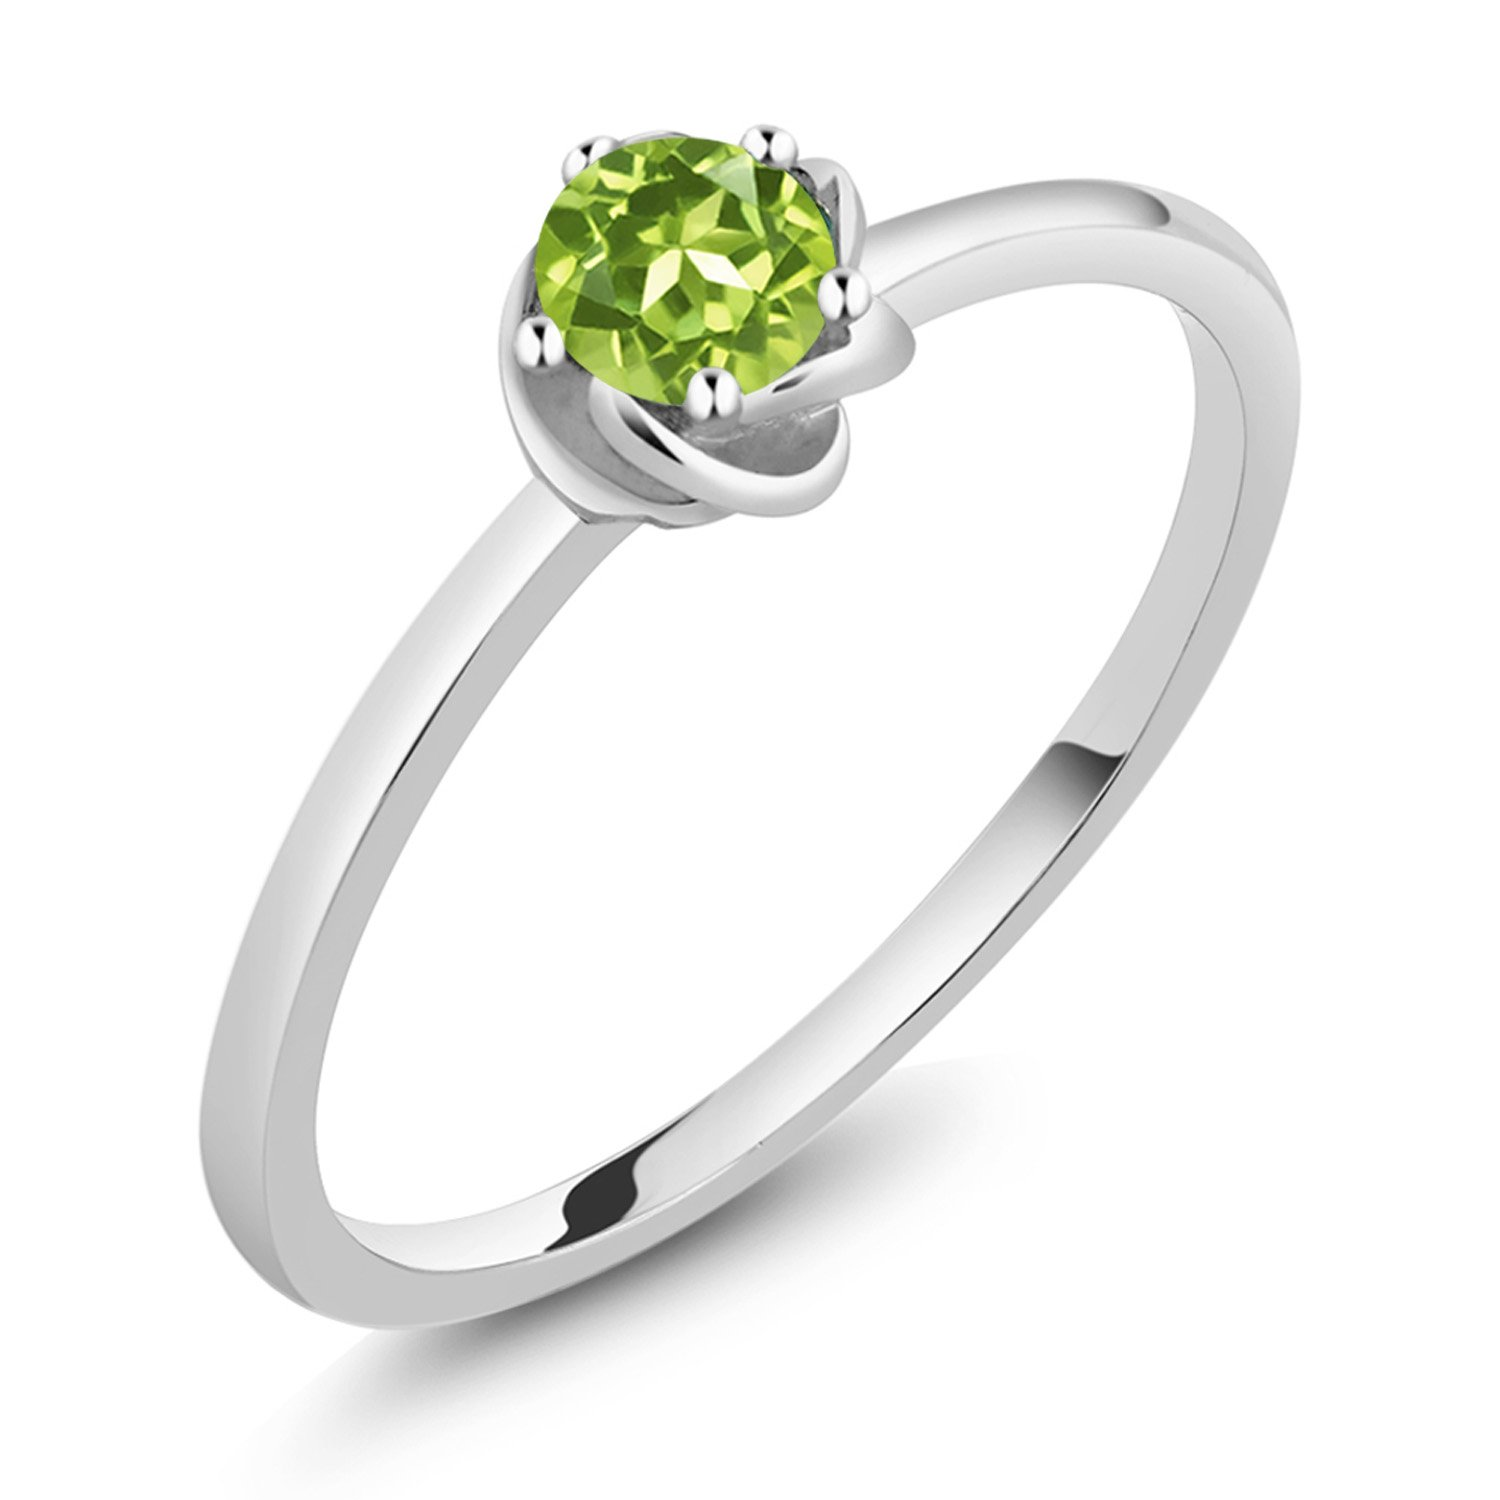 10K White Gold Green Peridot Solitaire Engagement Ring 0.18 Ct Round (Size 6)